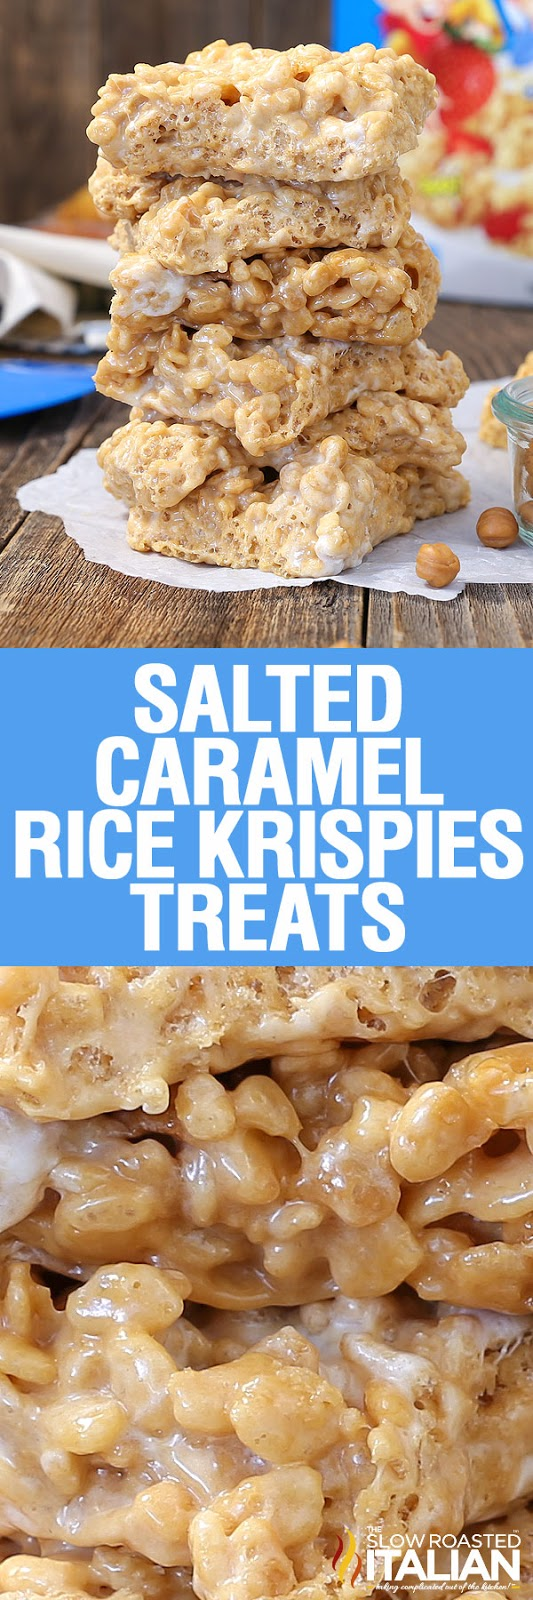 Salted Caramel Rice Krispies Treats Kripiss Medan Karamel Disclosure Posts May Contain Affiliate Links If You Purchase A Product Through An Link Your Price Will Remain The Same And Slow Roasted